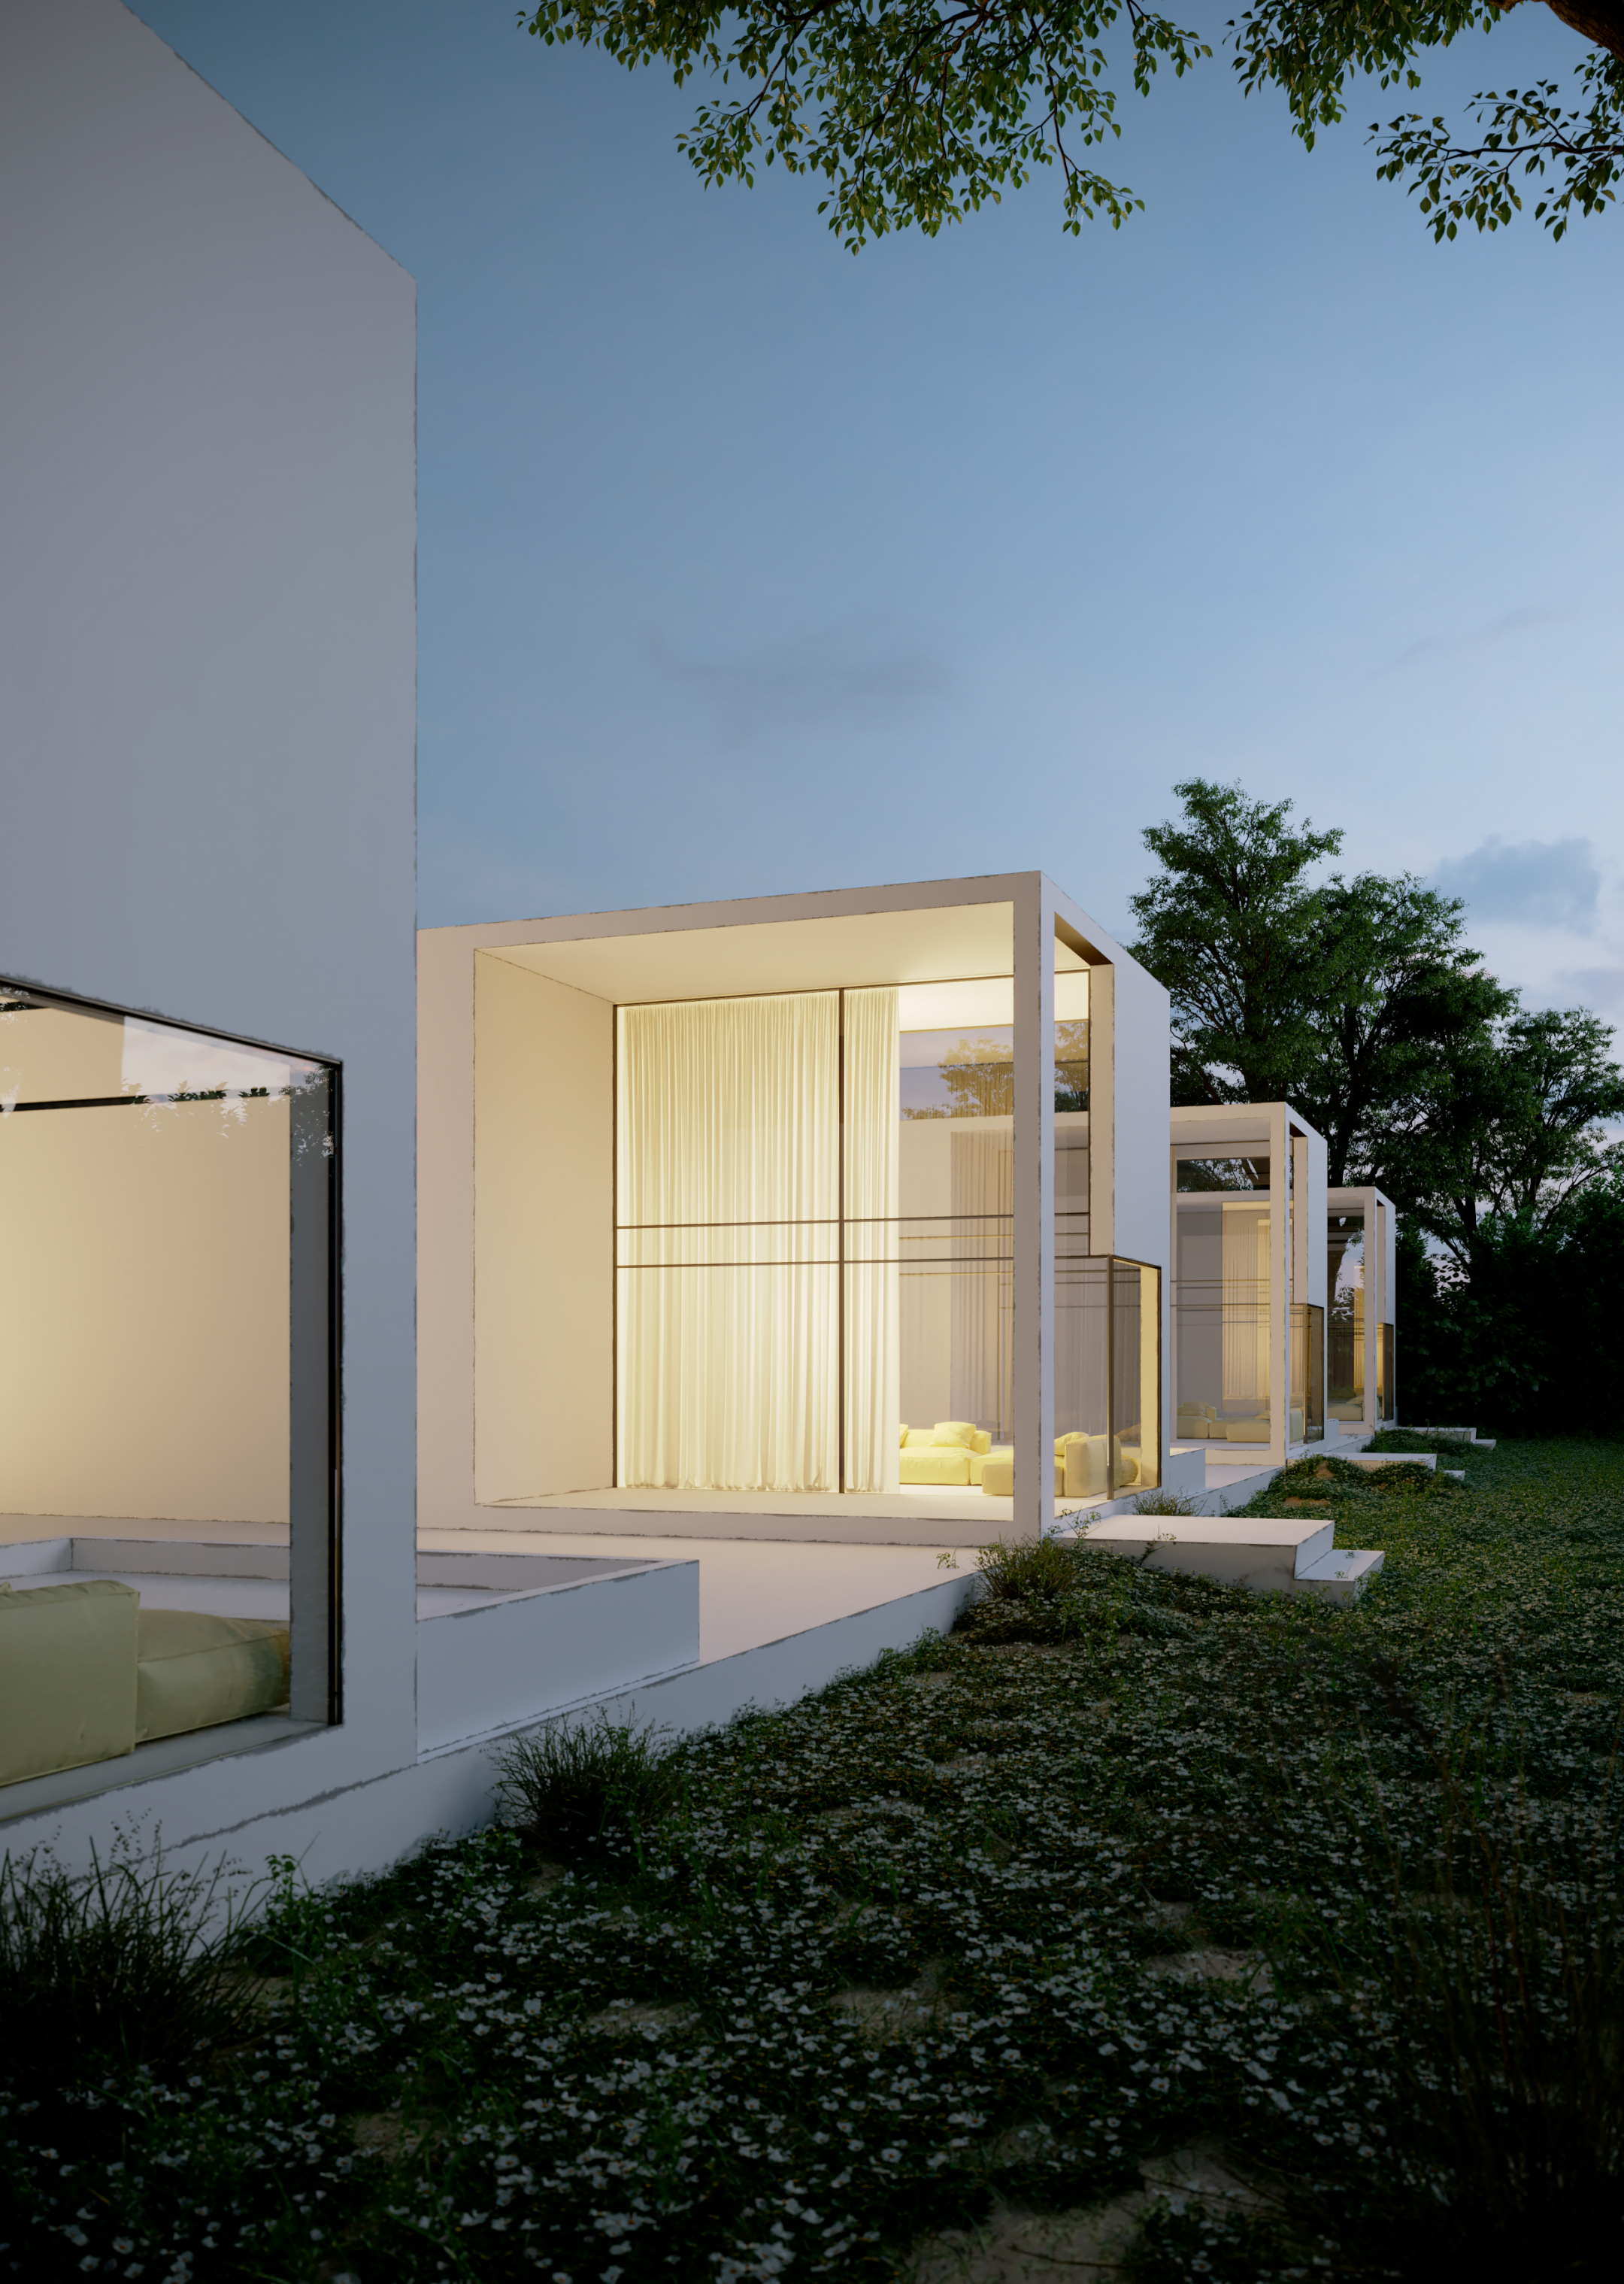 The white townhouse in 3d max corona render image